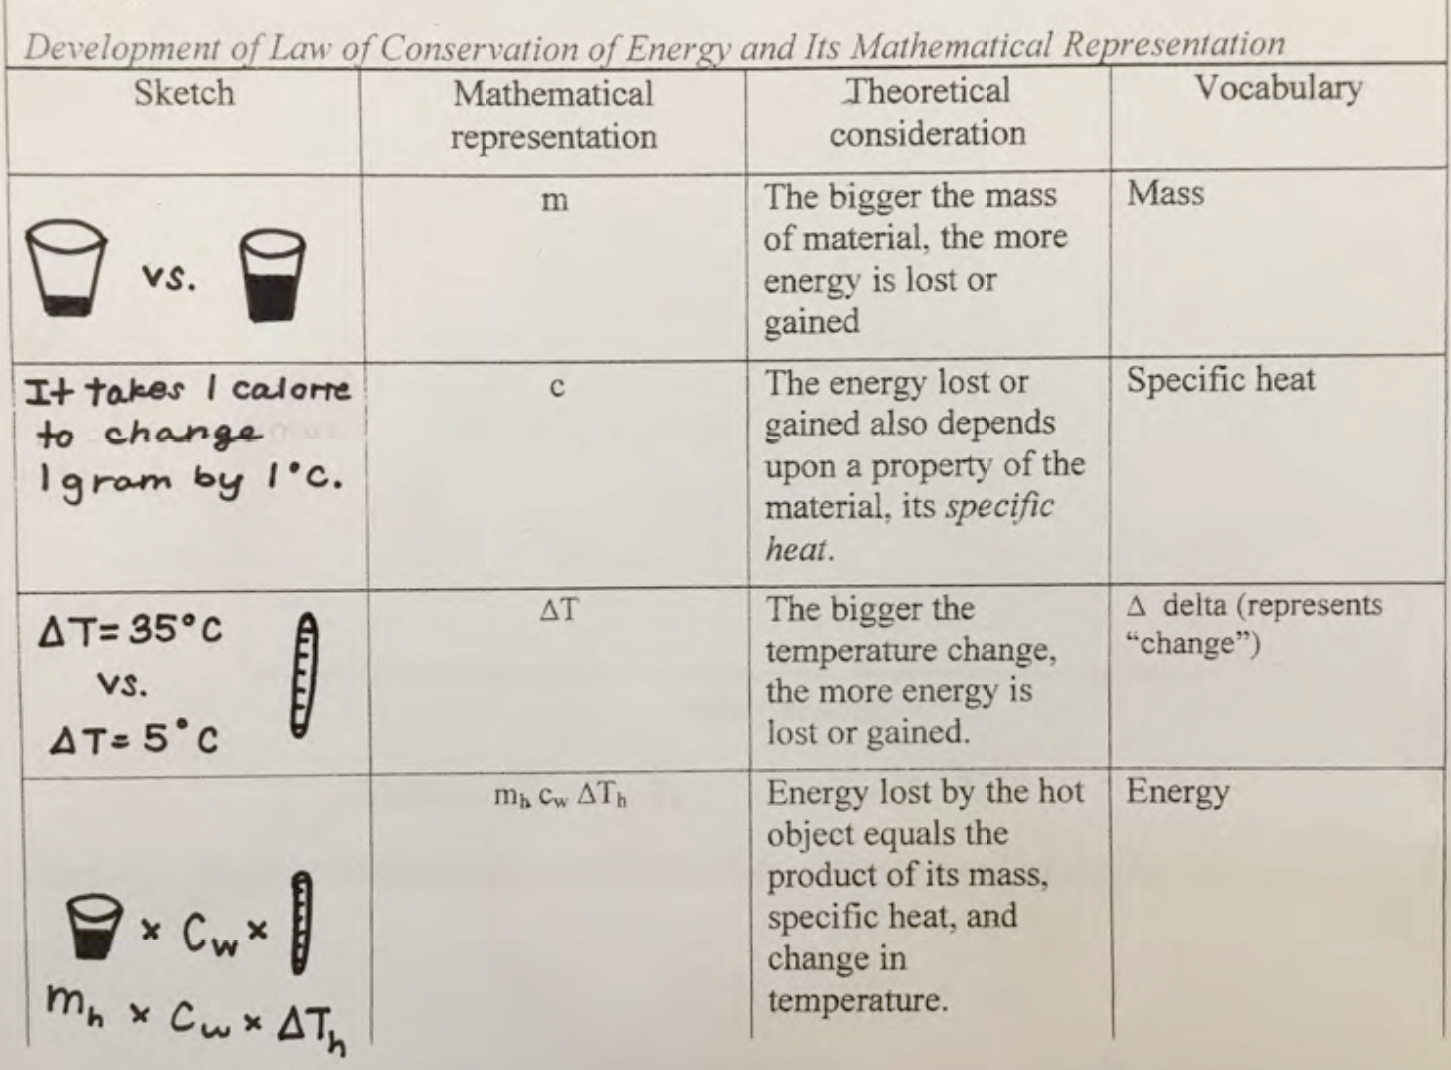 Student's entries describing exploration of changes in energy.